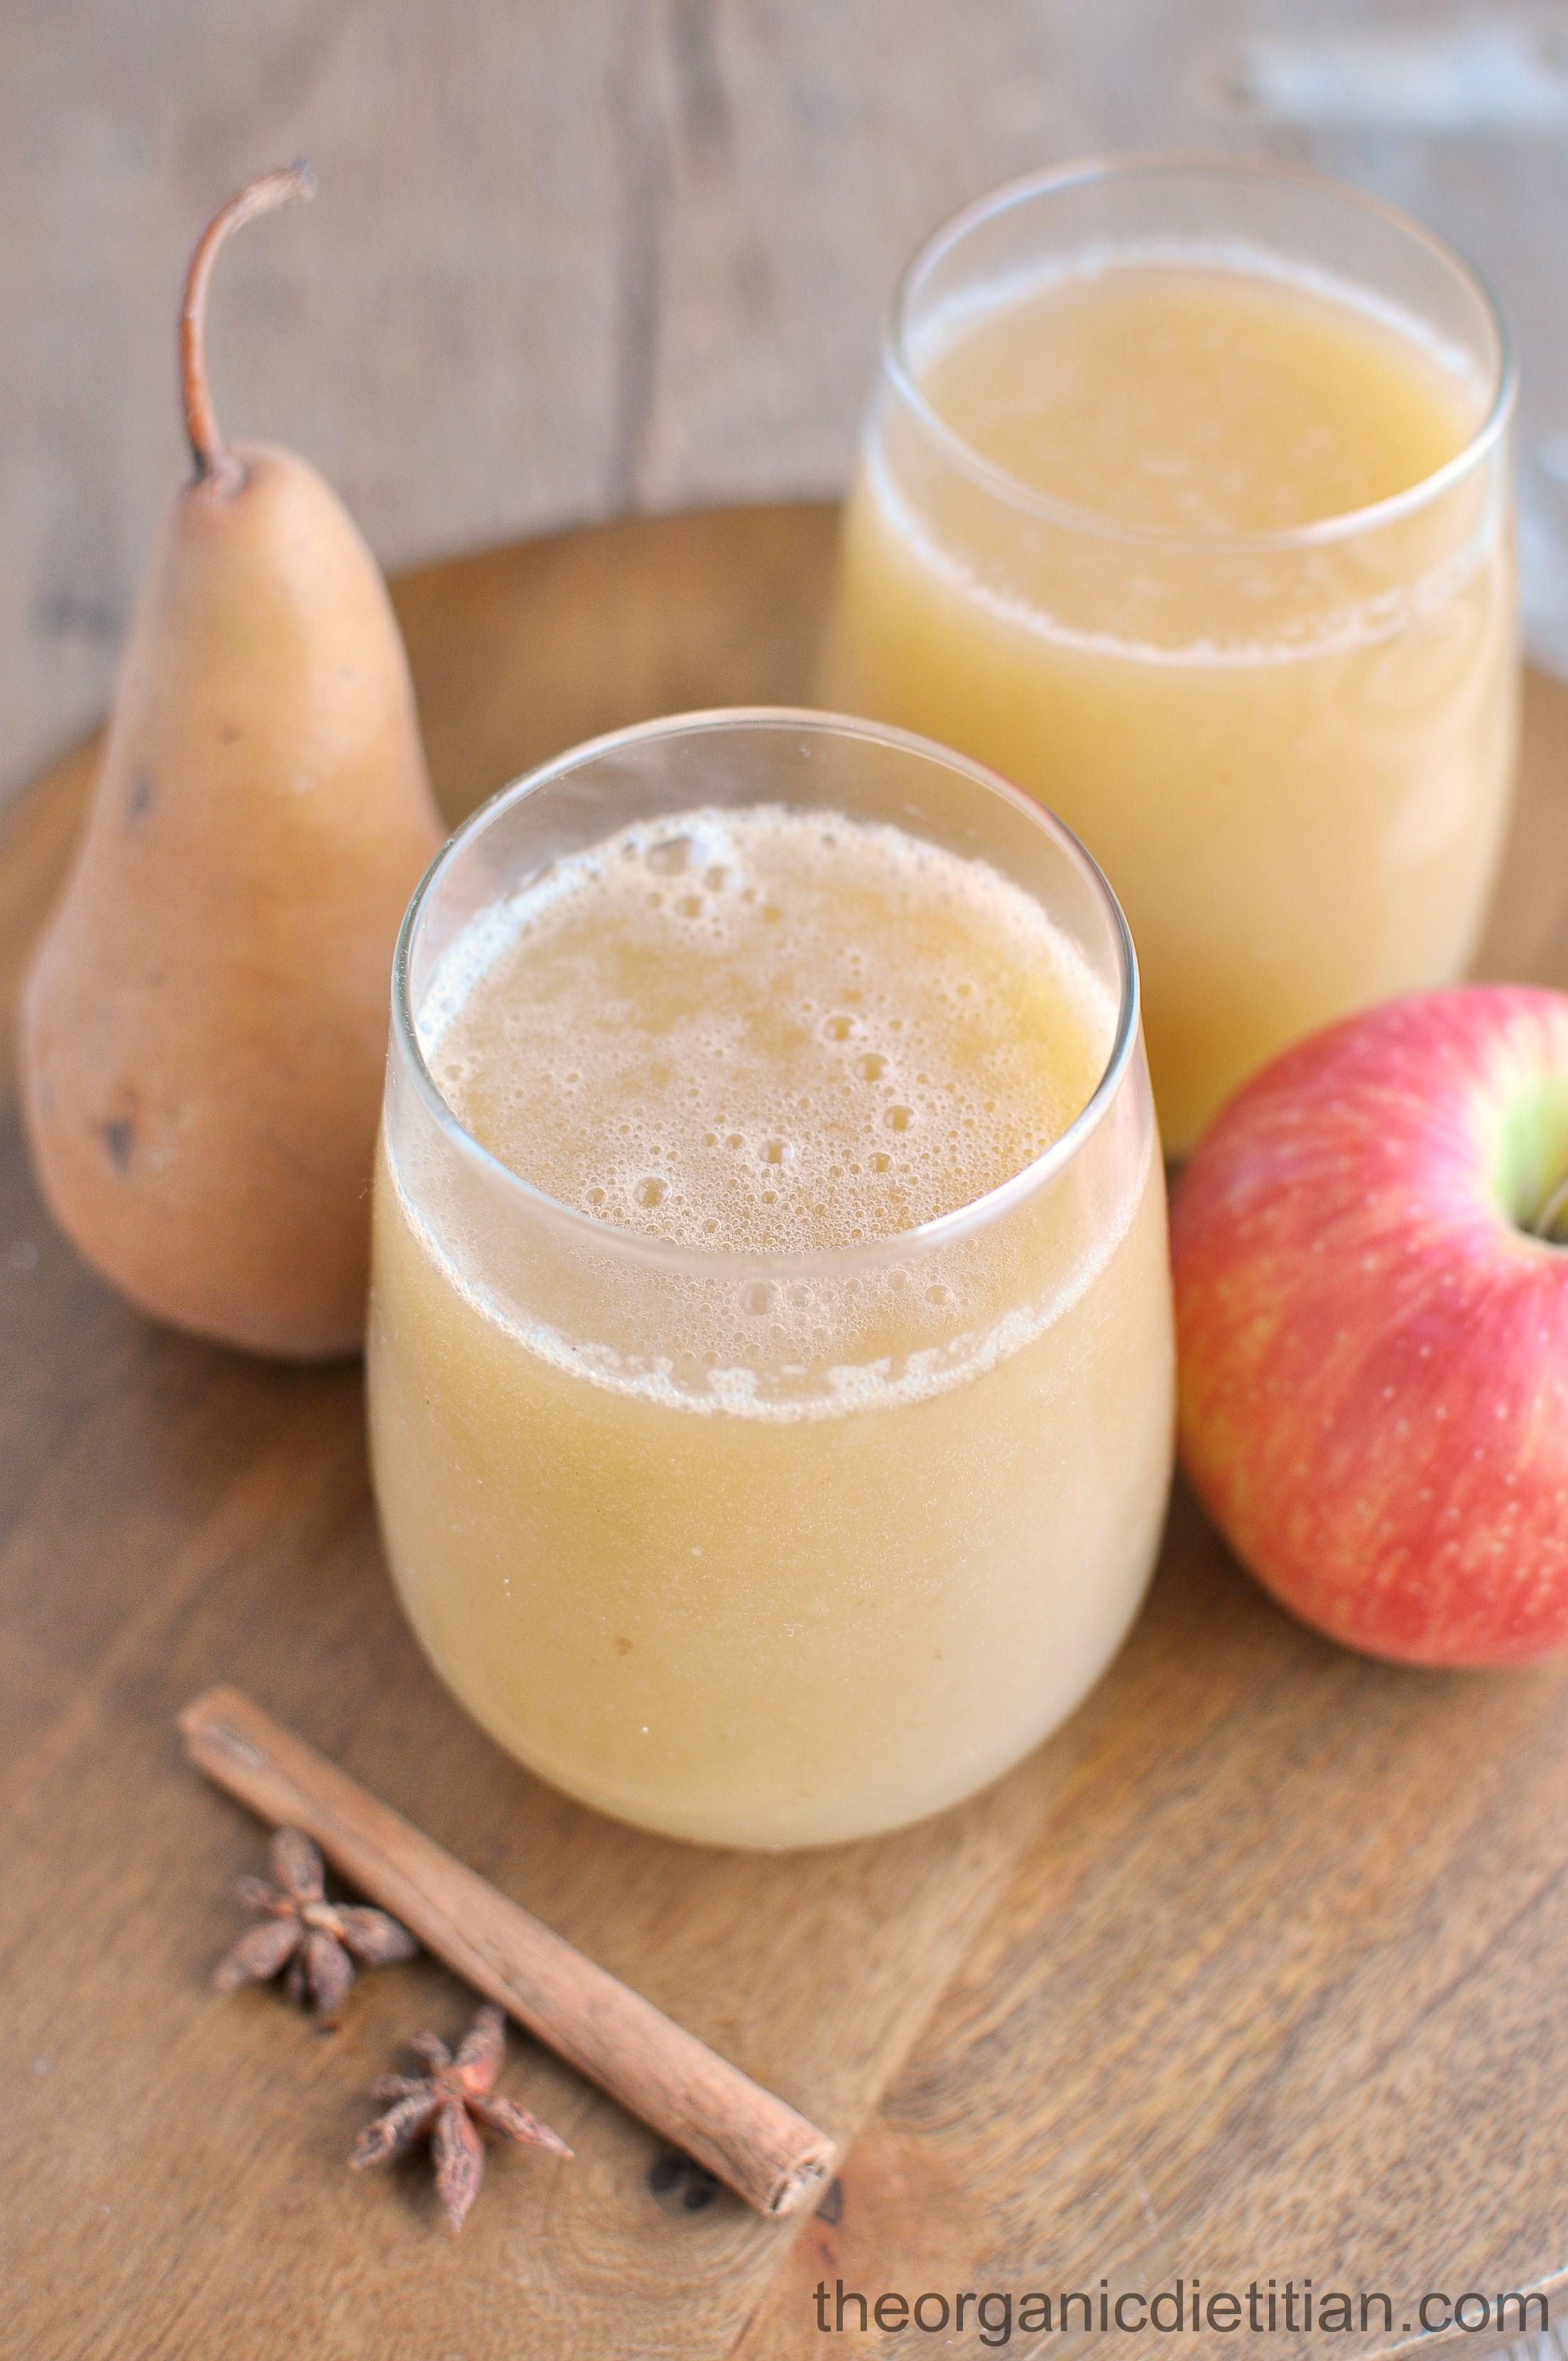 Sparkling Apple Pear Cider (Juicer Recipe) - The Organic Dietitian